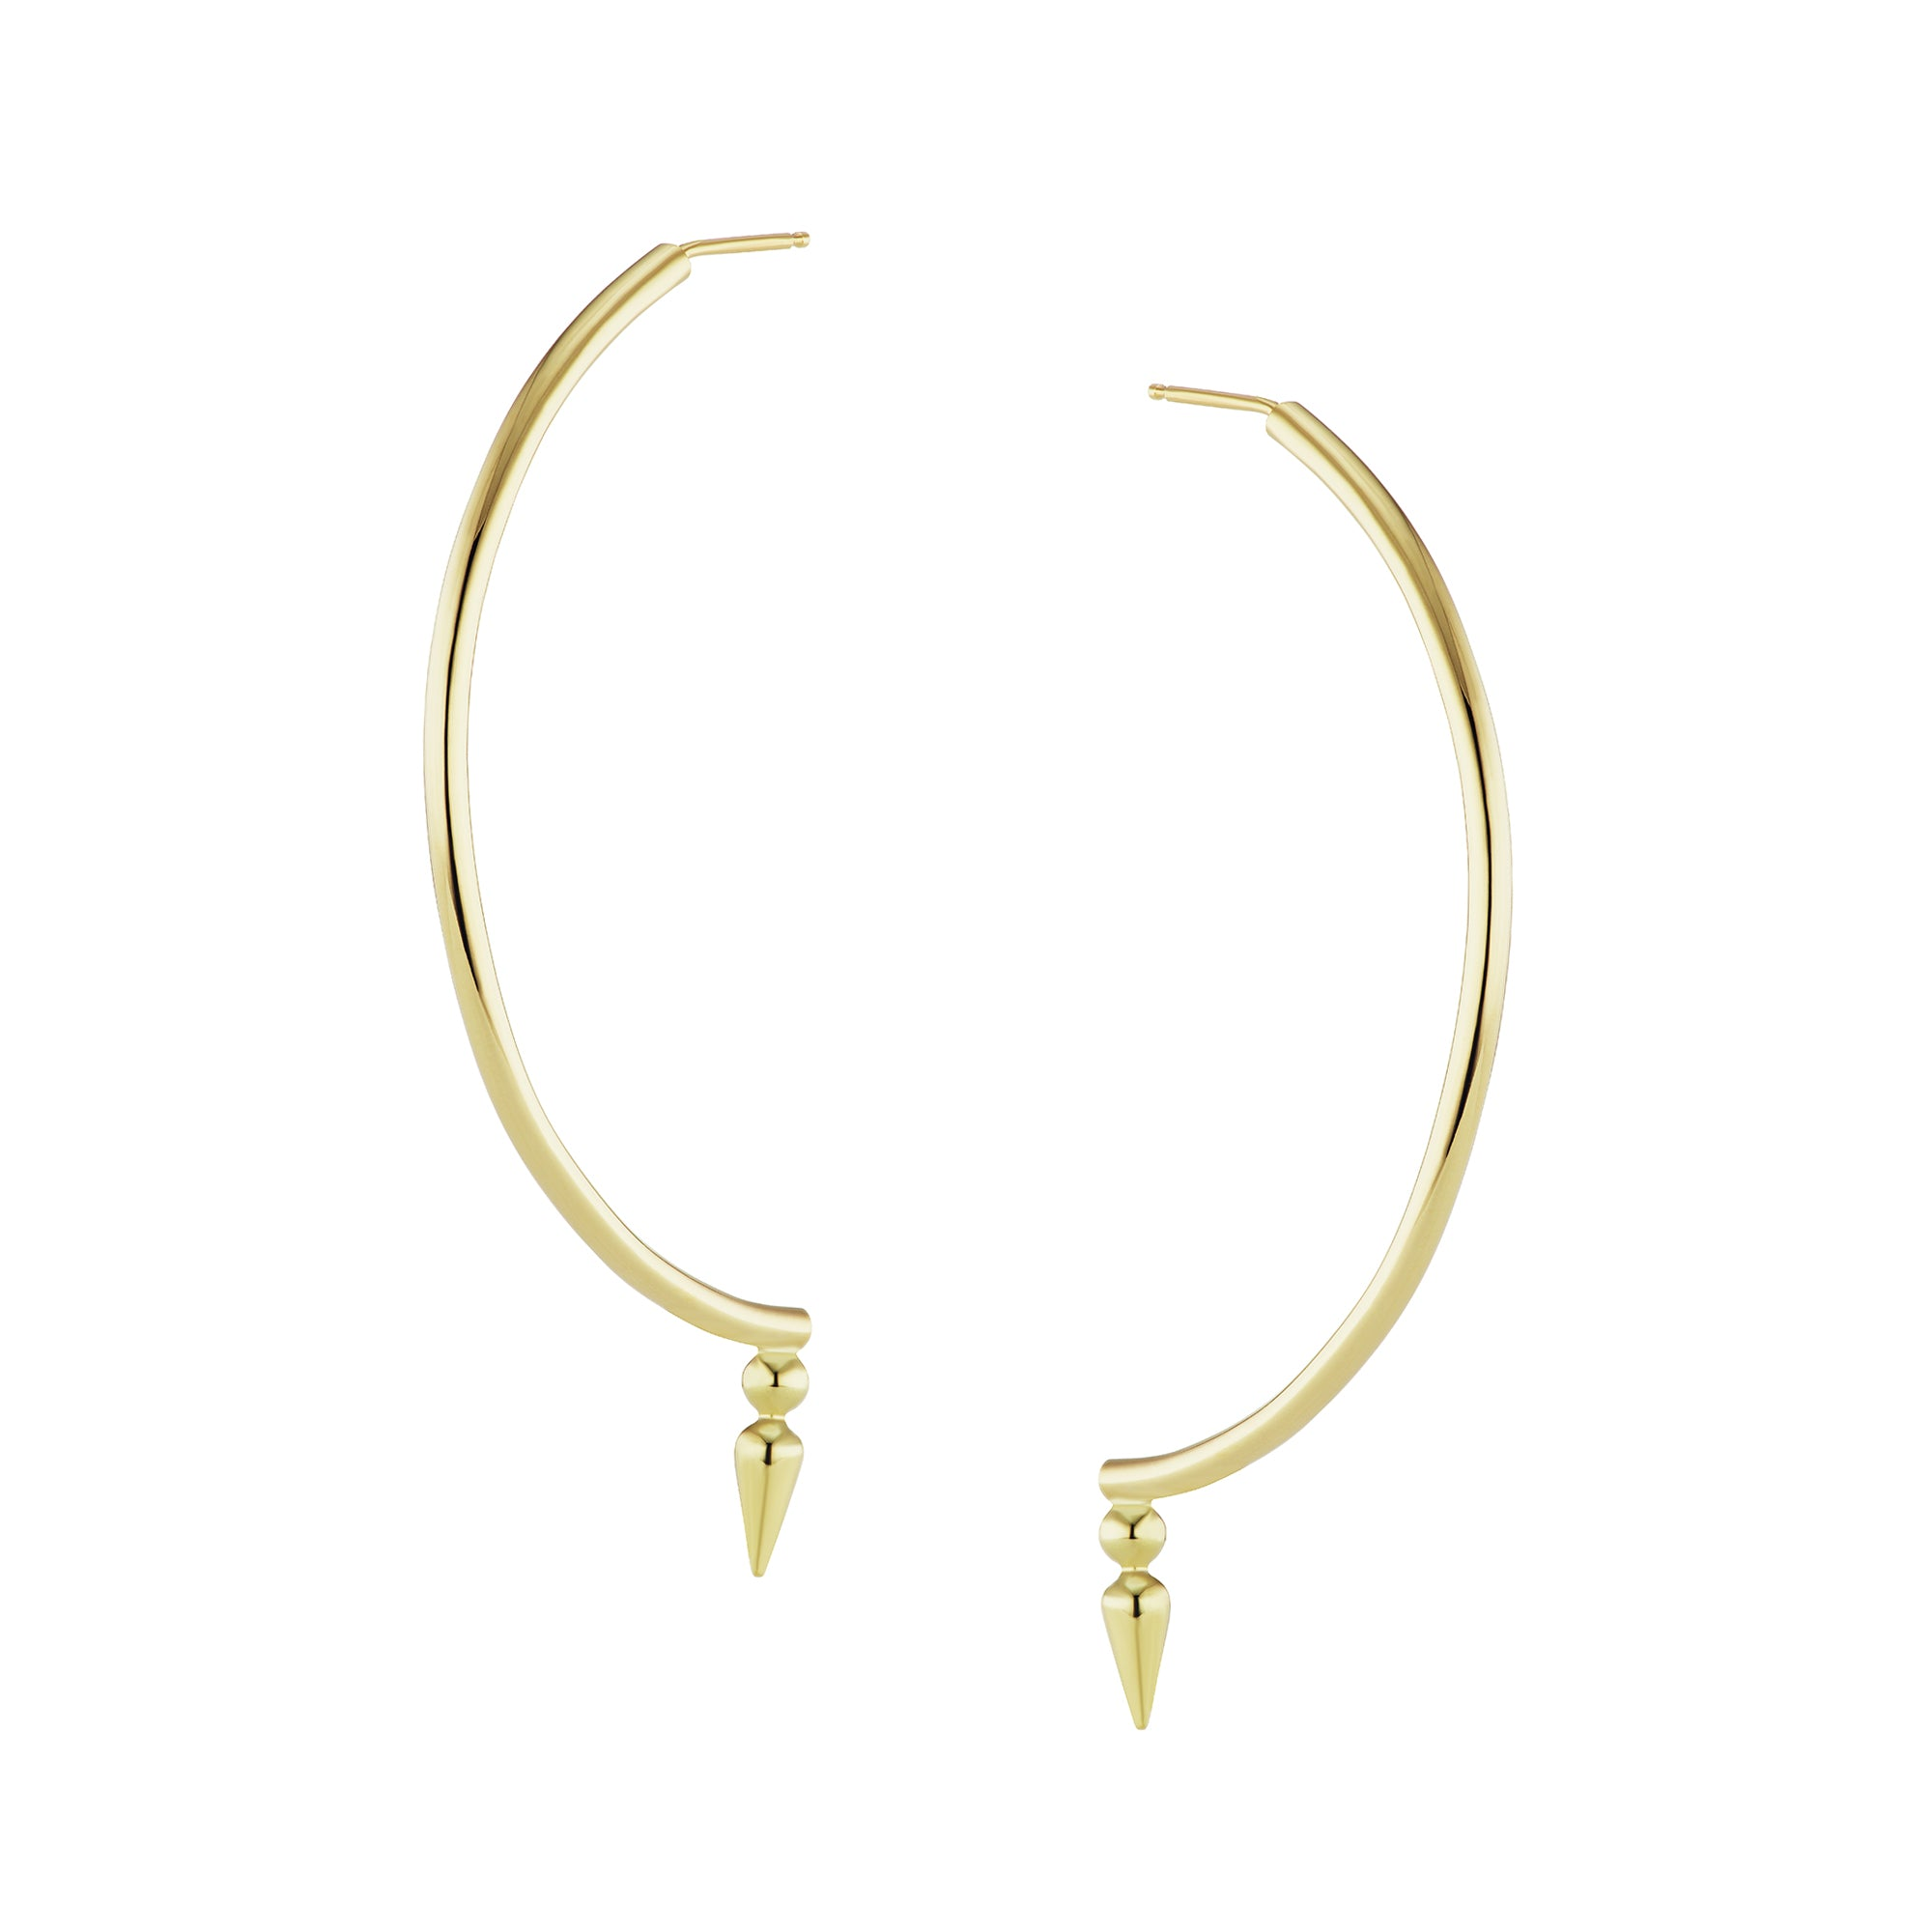 Sarah Hendler Half Spear Hoops - Earrings - Broken English Jewelry